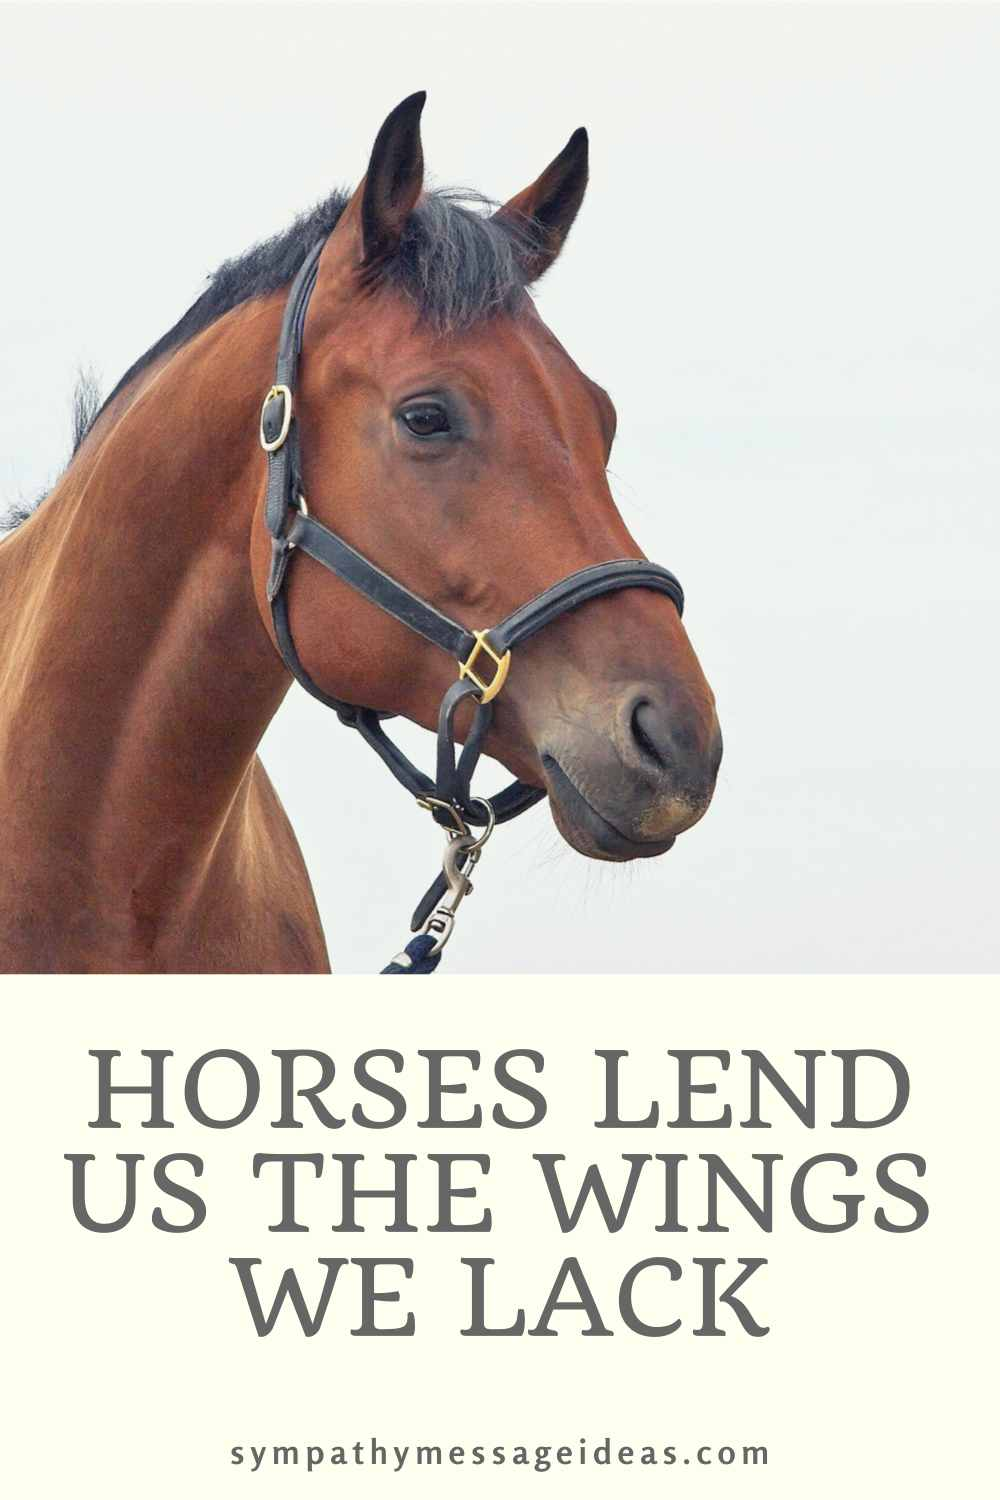 horses lend us wings quote